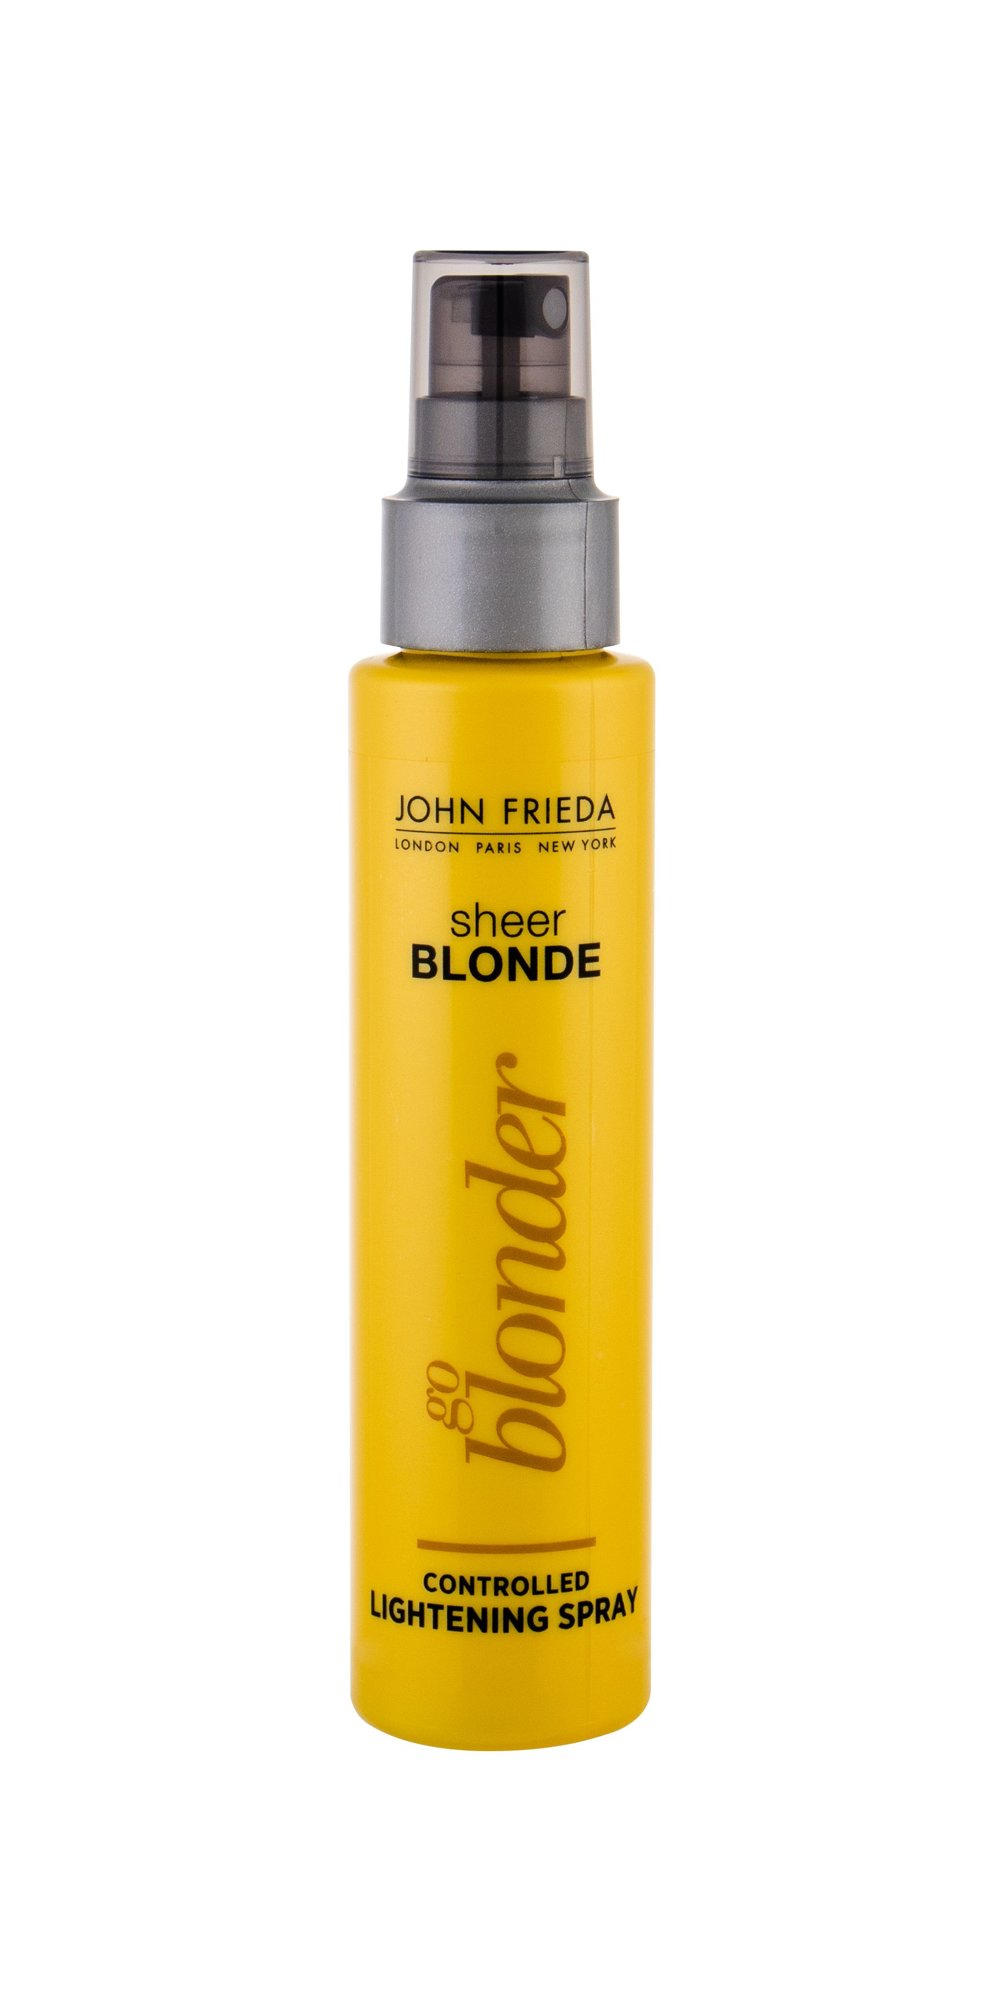 John Frieda Sheer Blonde Hair Color 100ml  Go Blonder